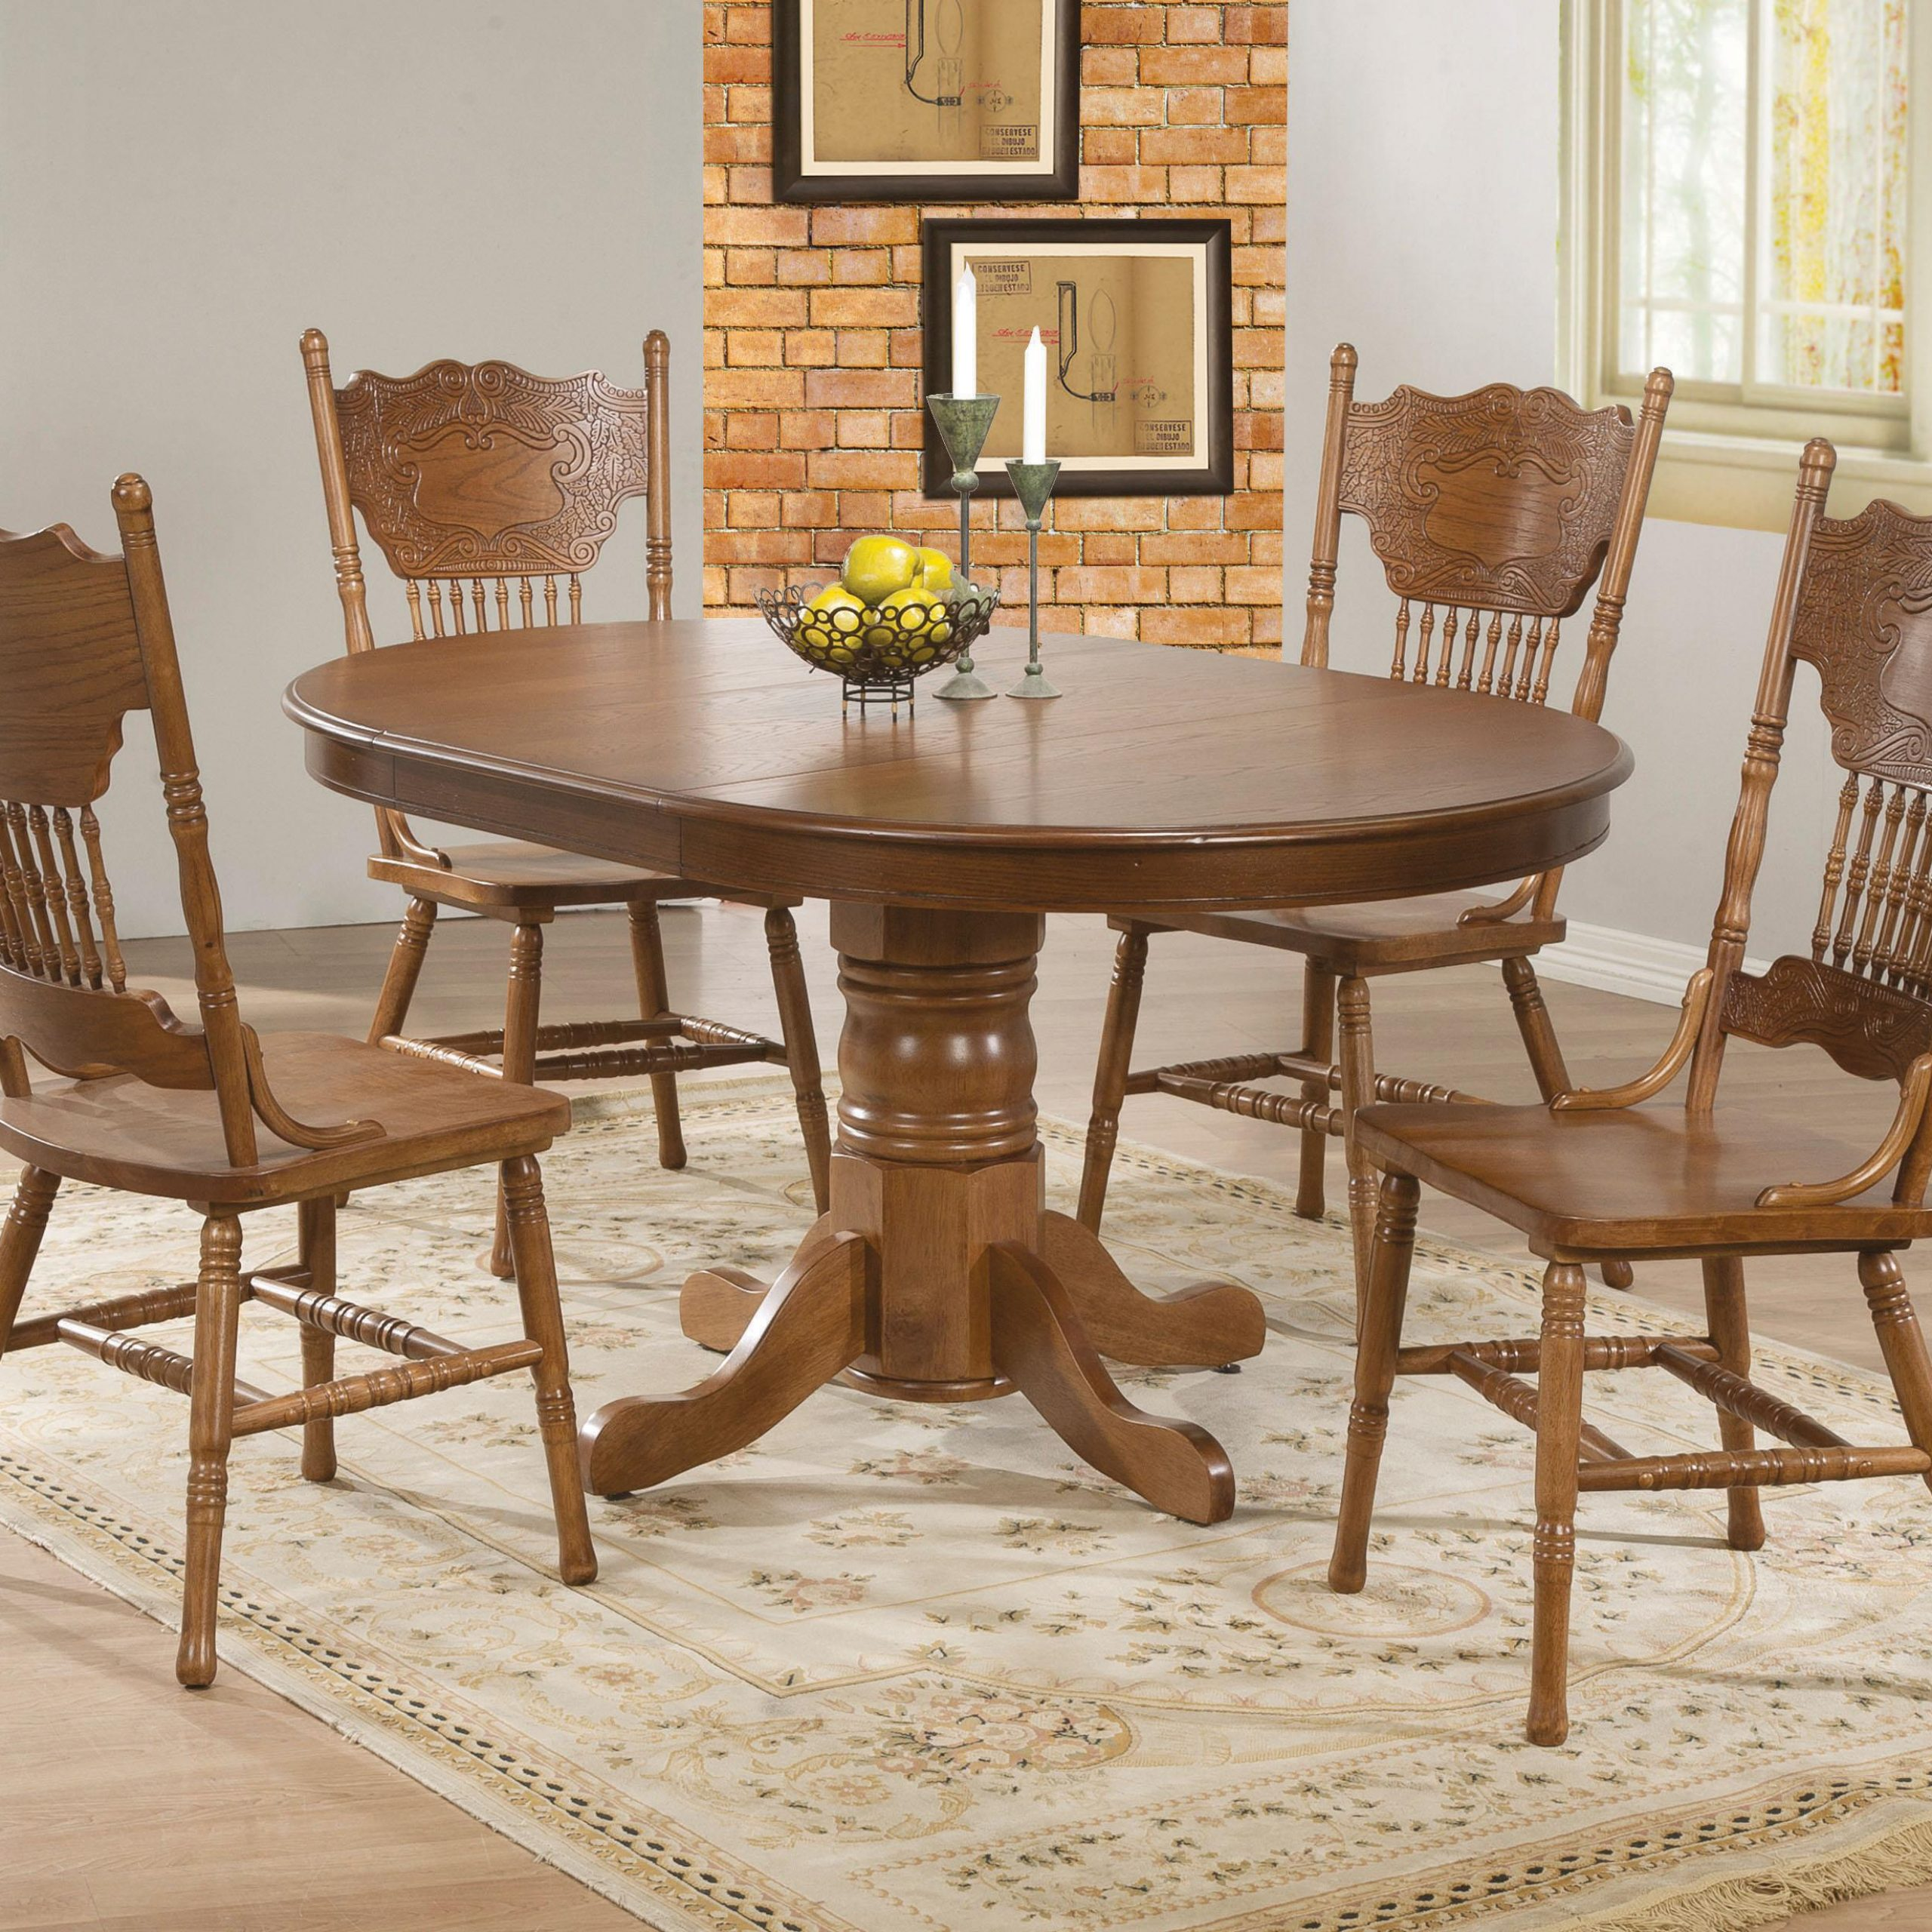 Oak Dining Table Chairs – Dining Table Ideas Throughout Most Current Brooks Round Dining Tables (View 4 of 25)